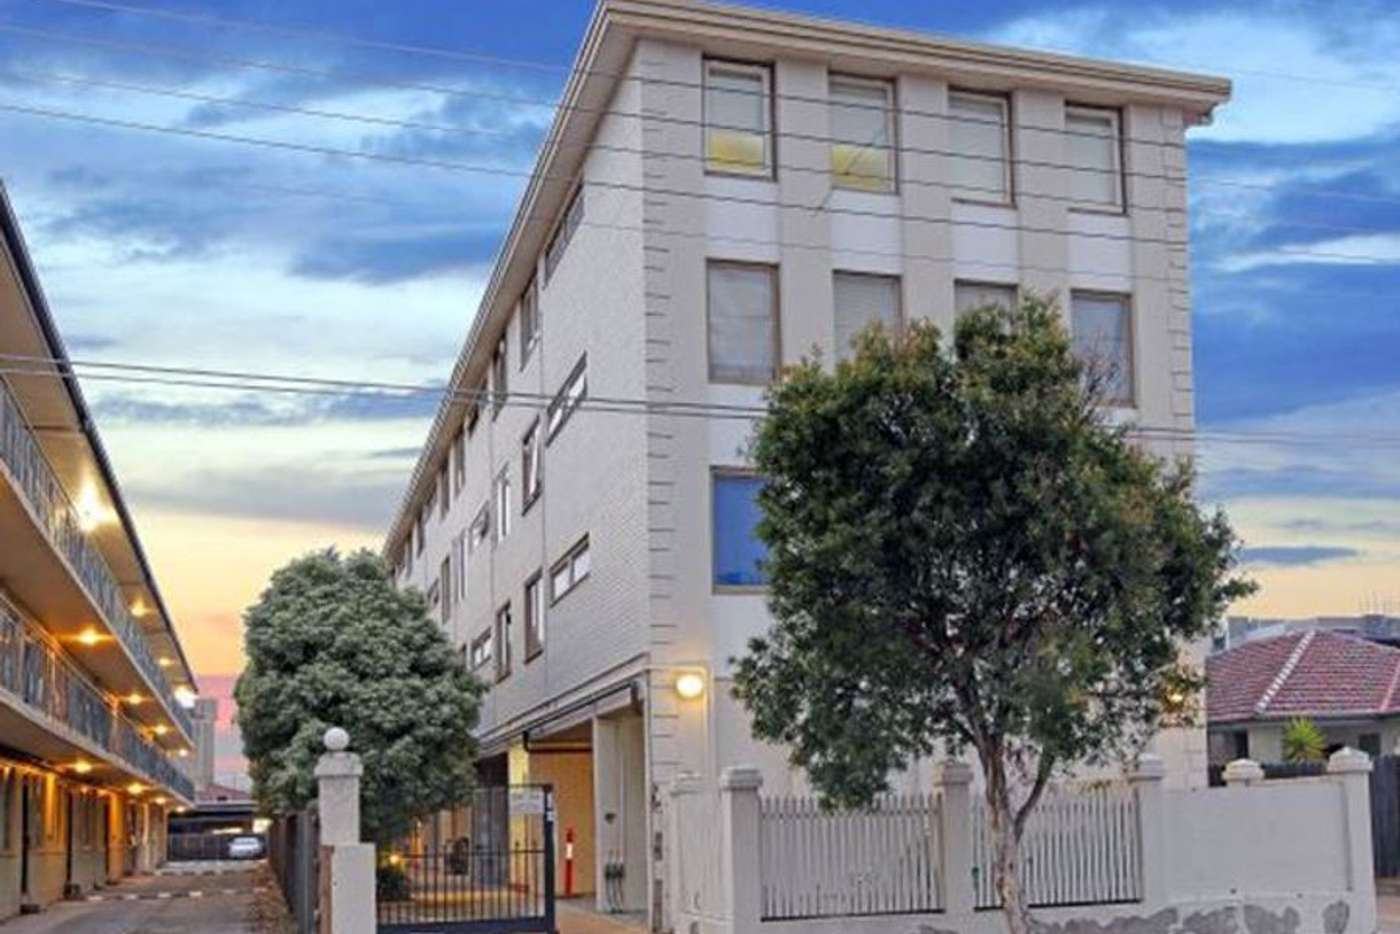 Main view of Homely unit listing, 3/55 De Carle Street, Brunswick VIC 3056